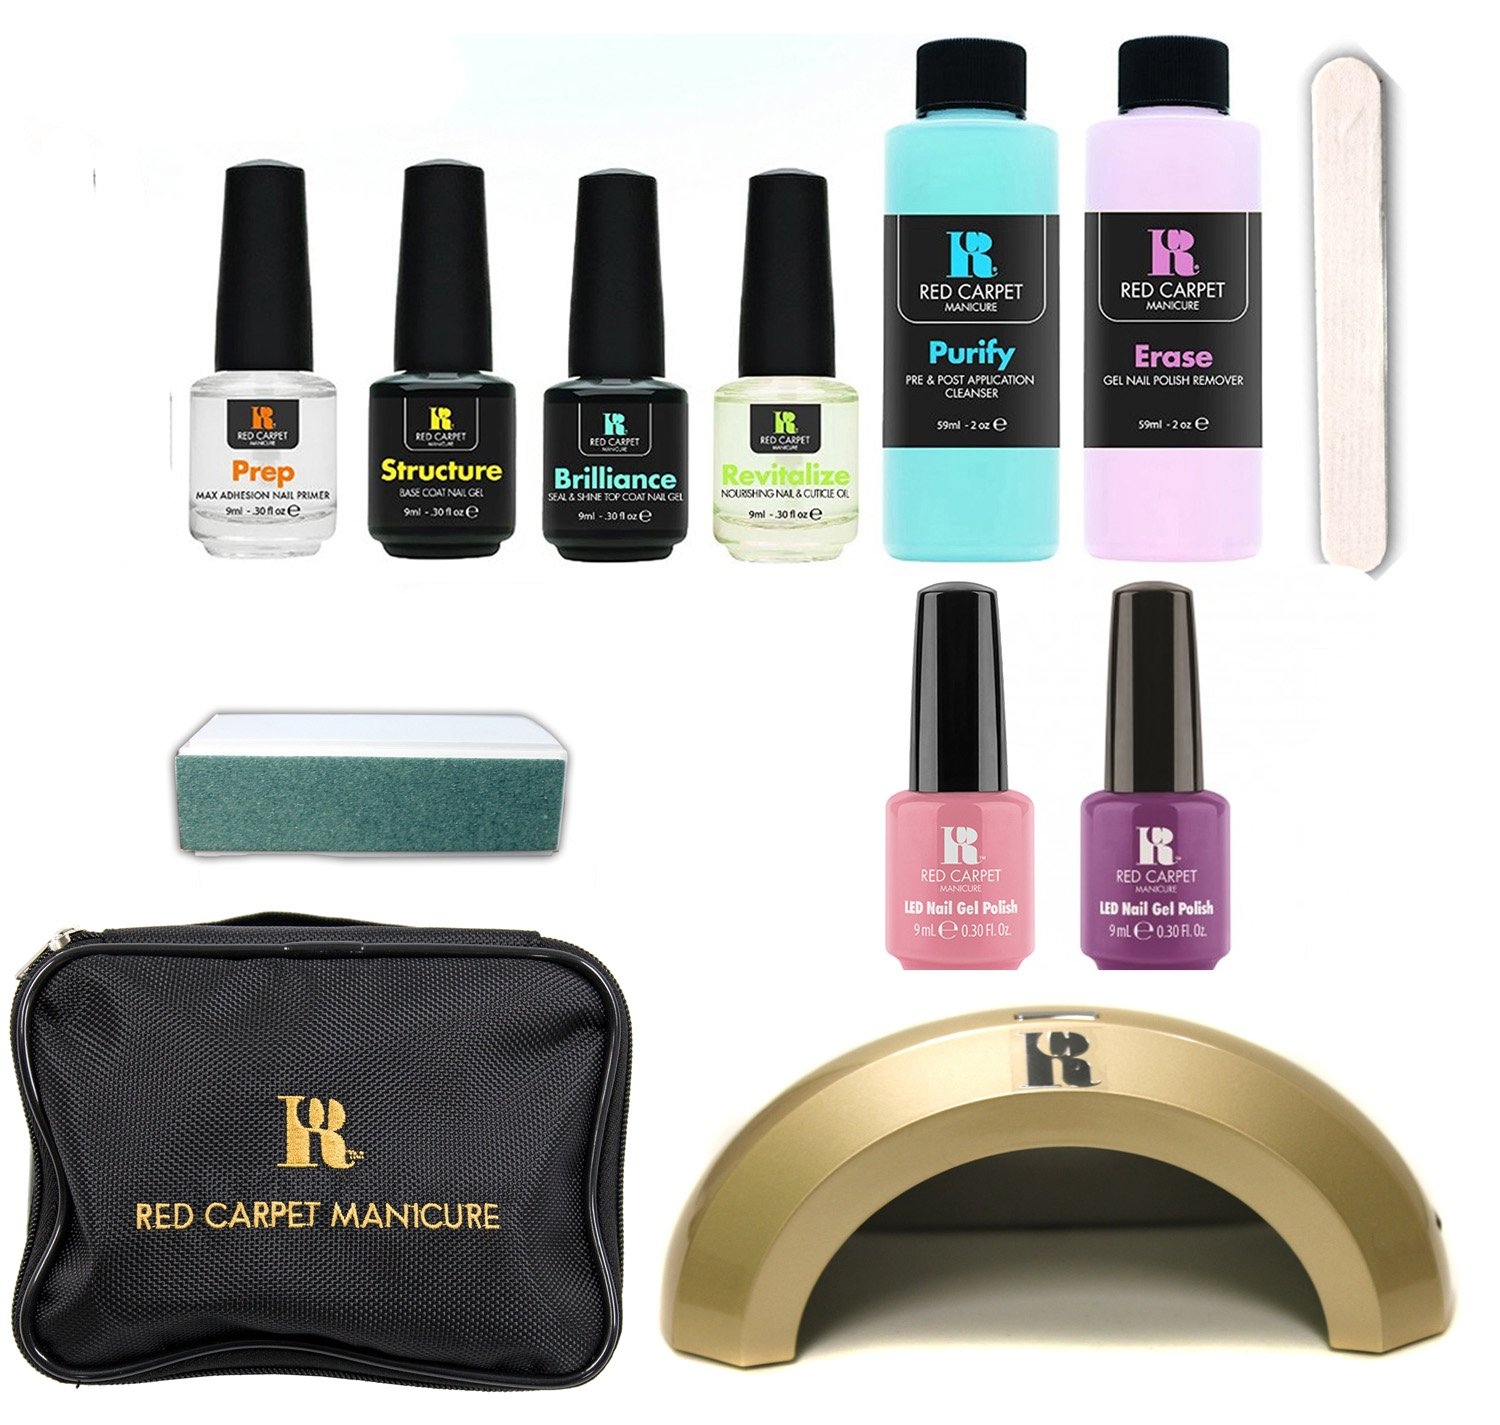 Red Carpet Manicure Cinderella 5 Color LED Gel Nail Polish Kit Set + Travel Bag